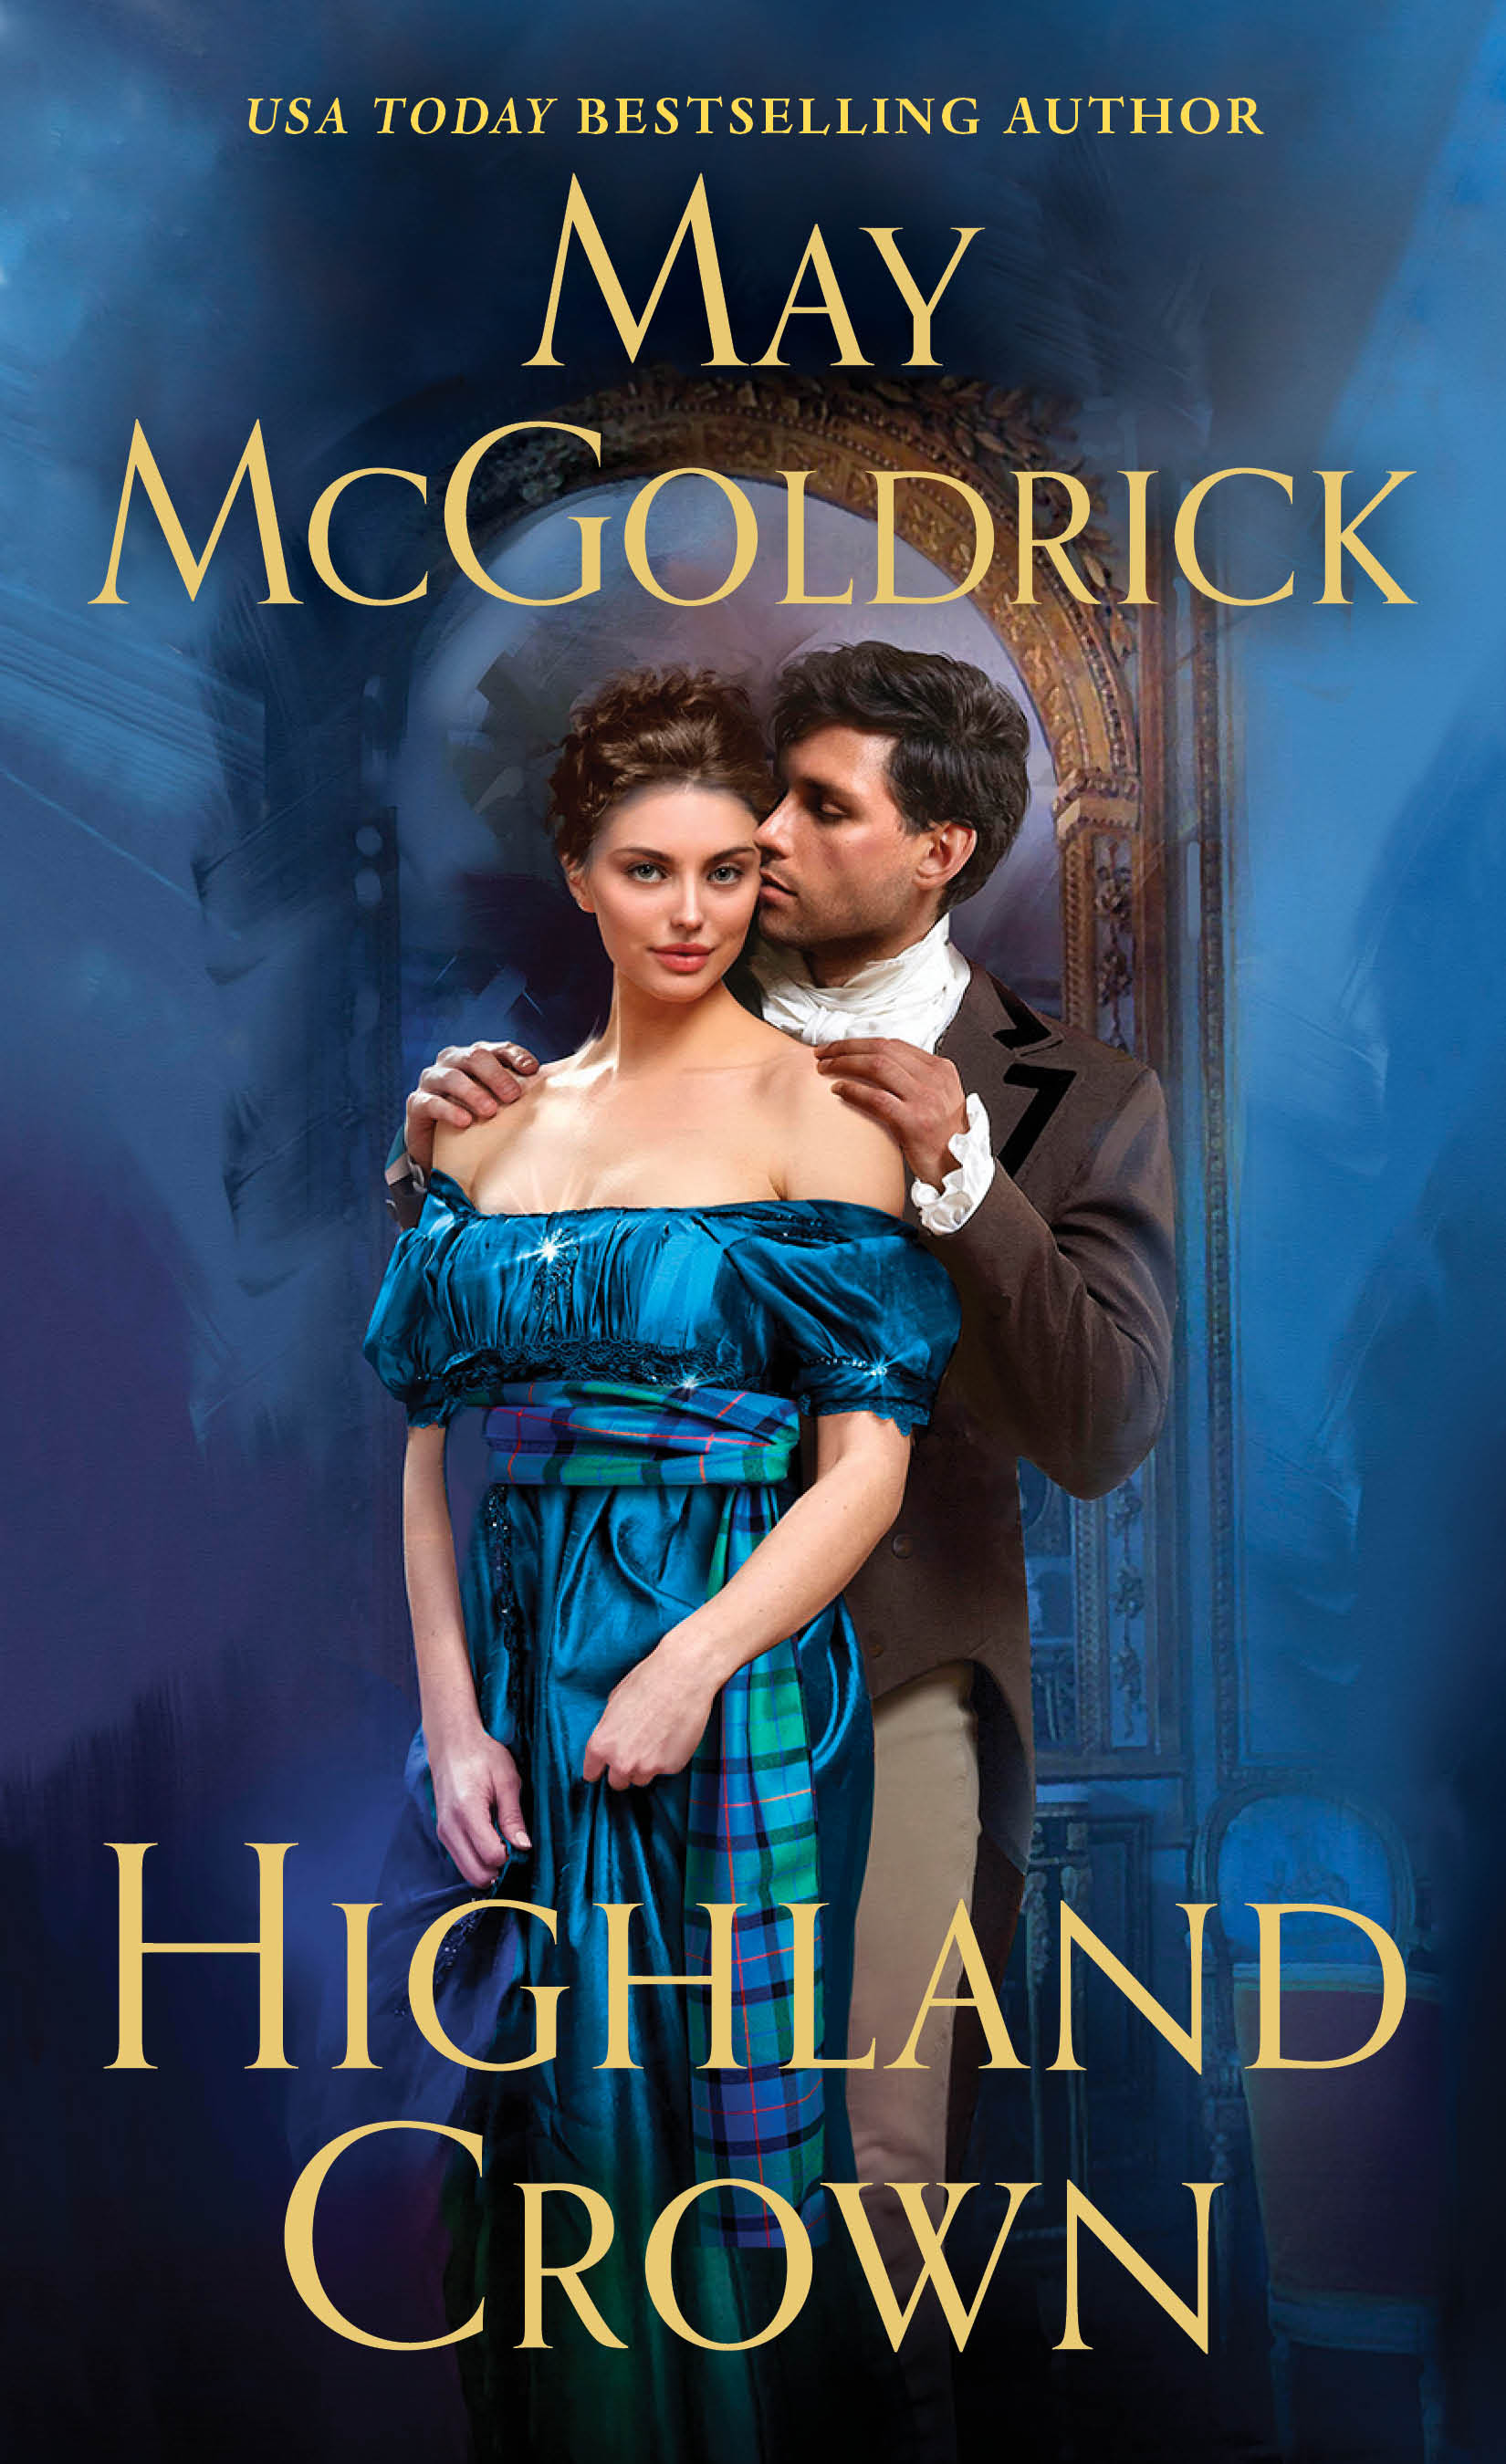 HighlandCrown-mm new cover.jpg